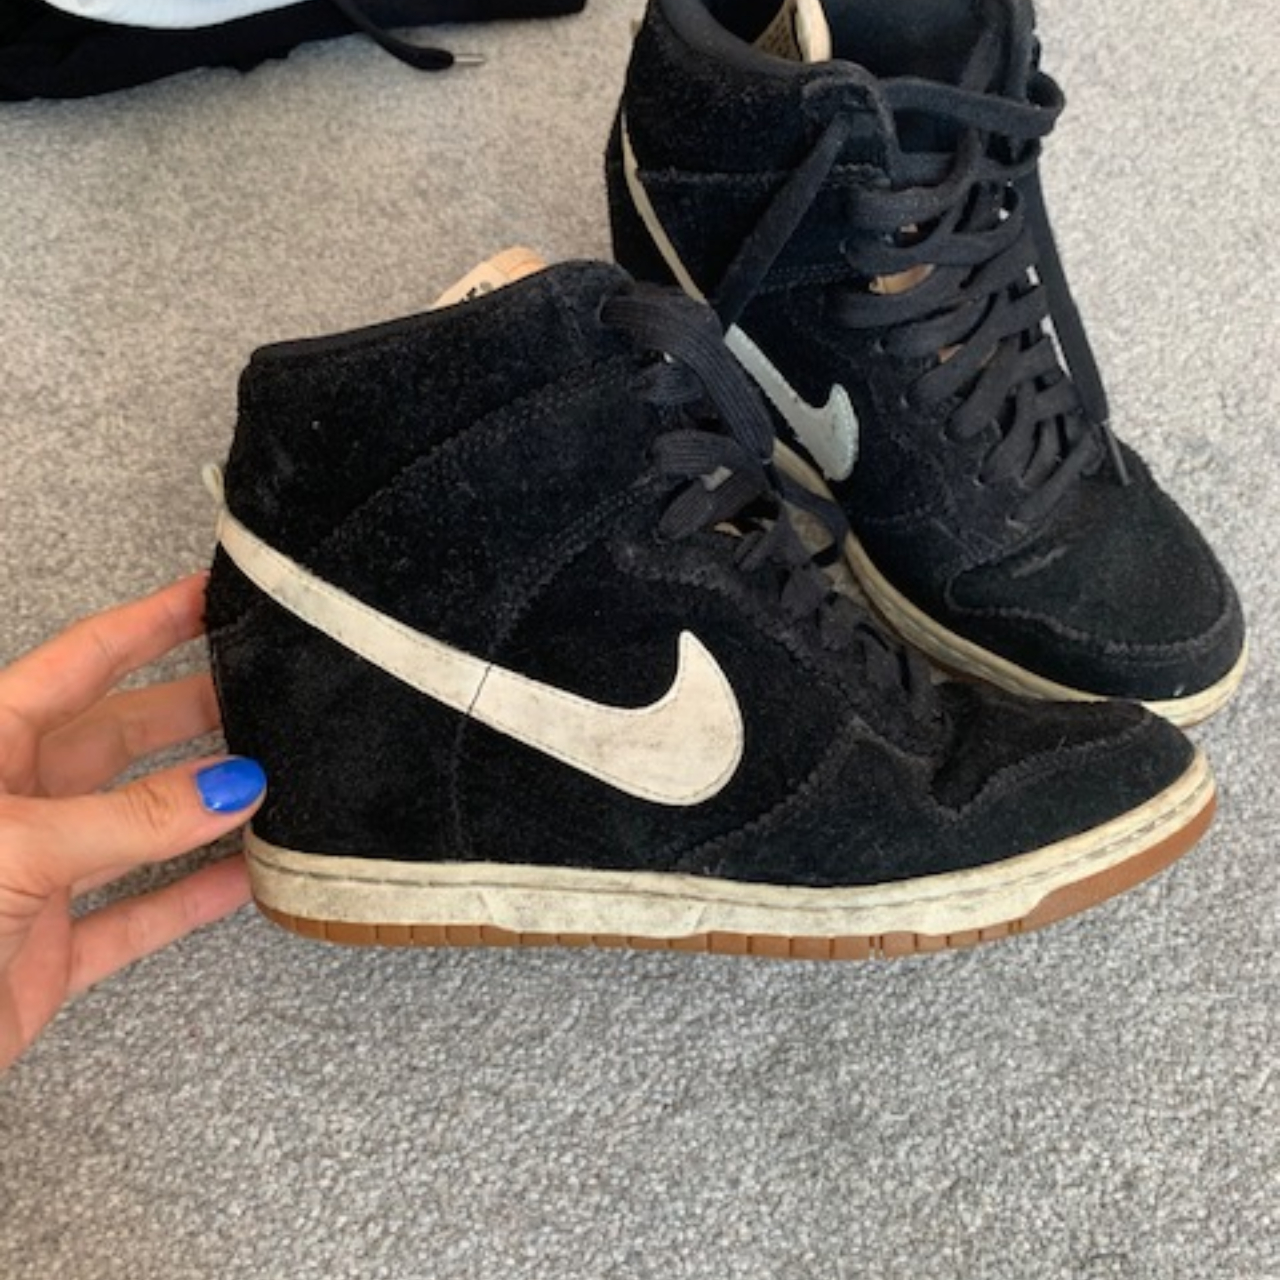 Trainers. Black with white tick. Size